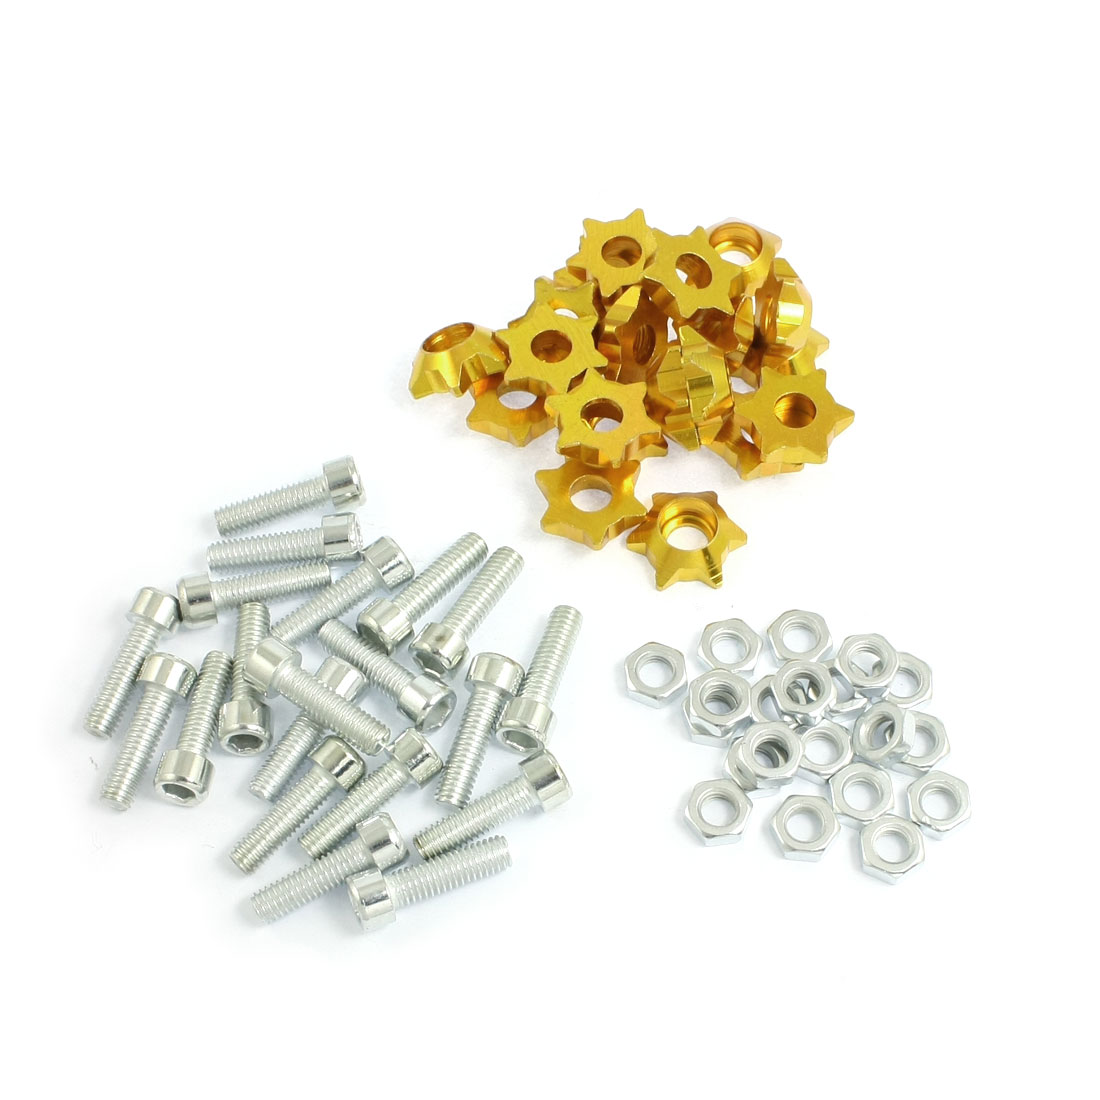 20 Pcs Two Tone Alloy Star Shape Car License Plate Bolt Screw